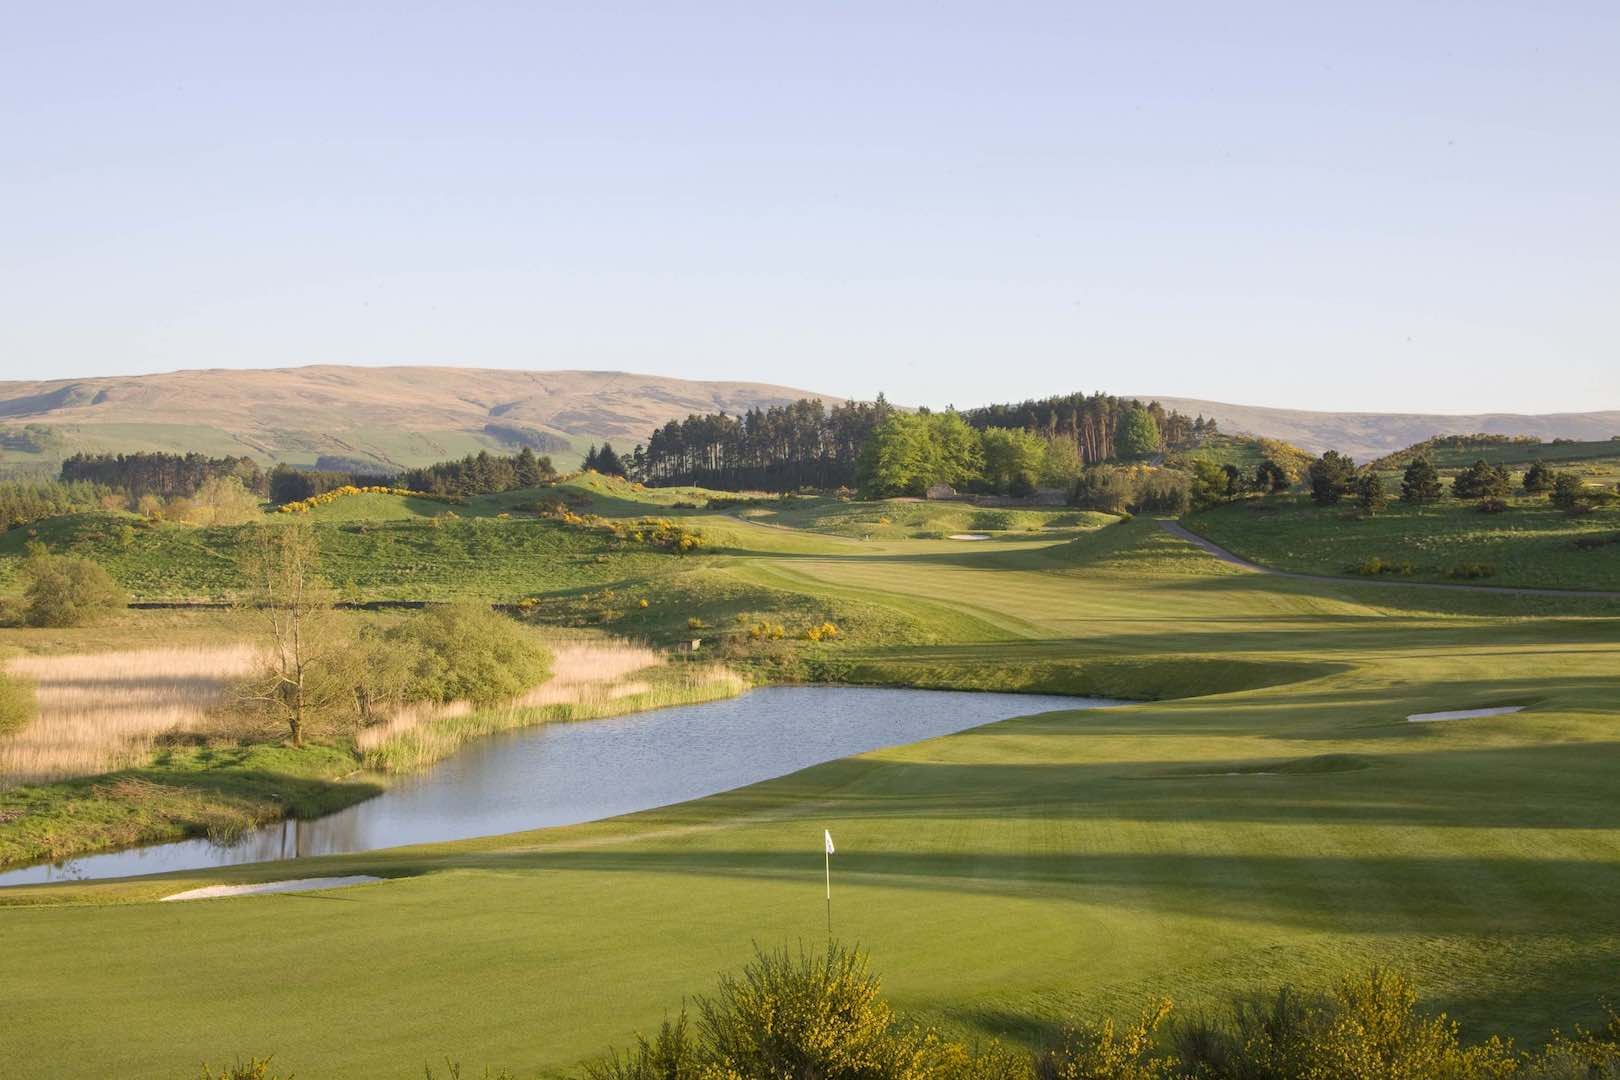 Golf tourism driving Scotland's economy